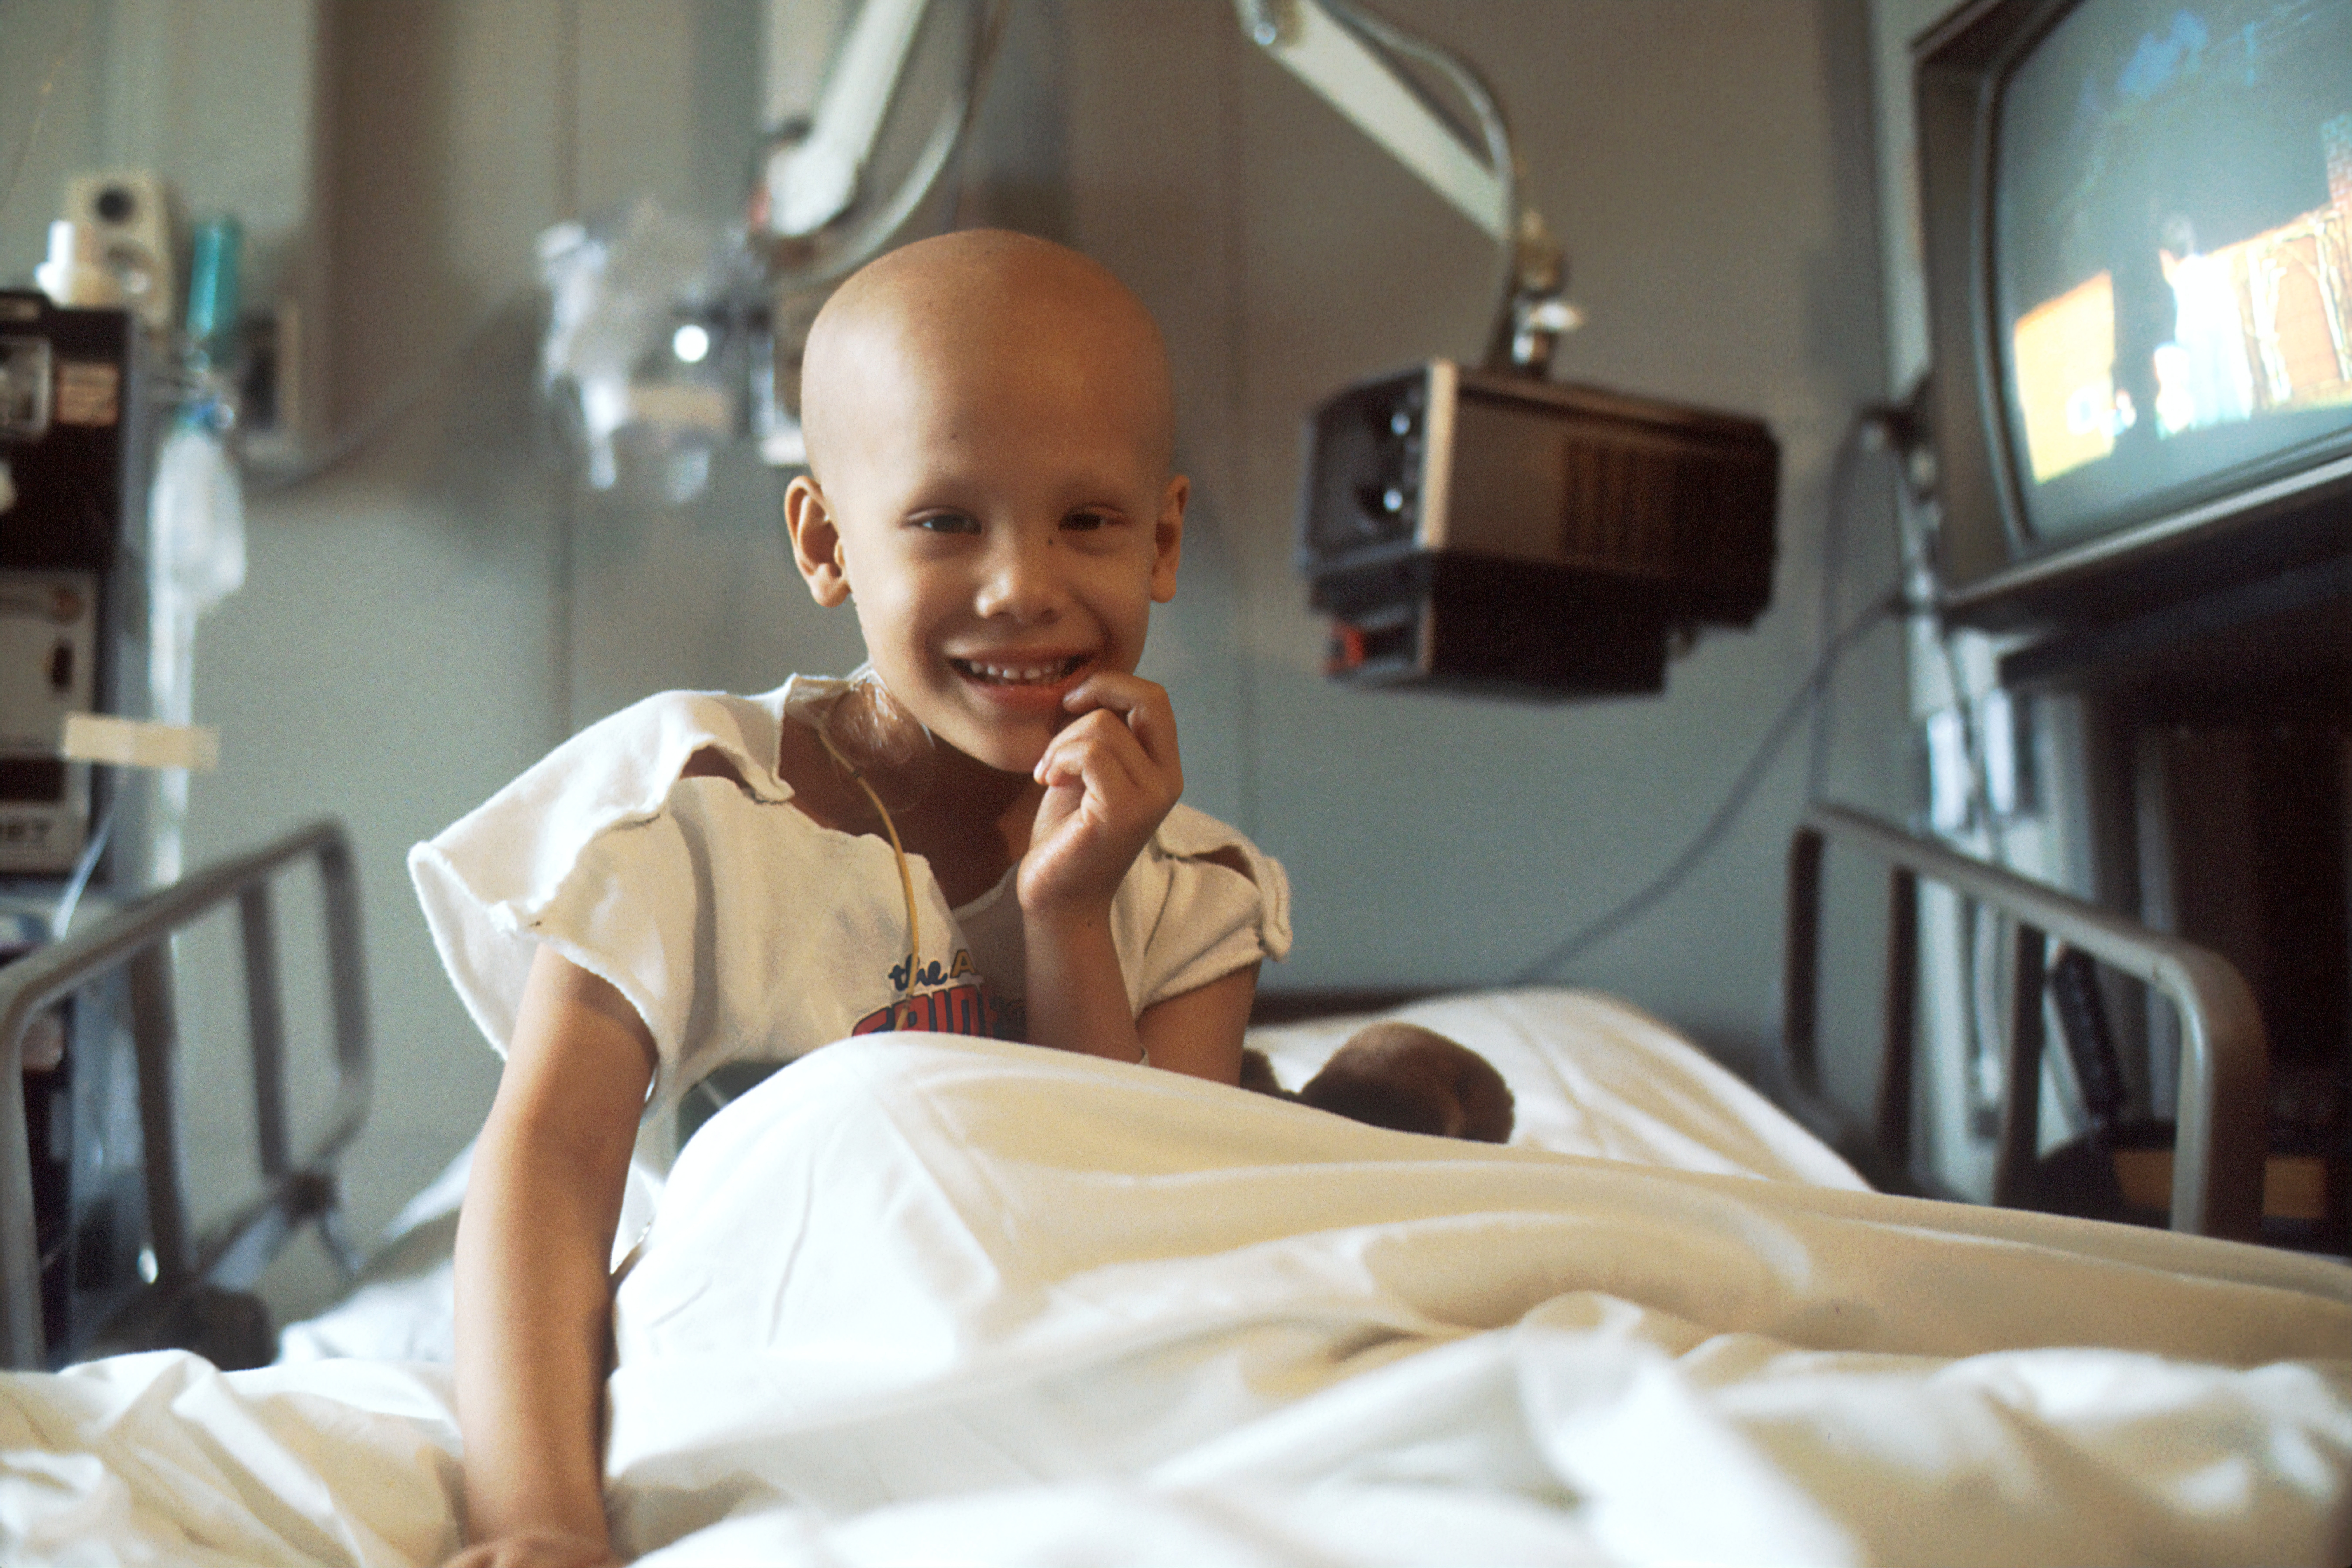 Early diagnosis and treatment key to surving childhood cancer.